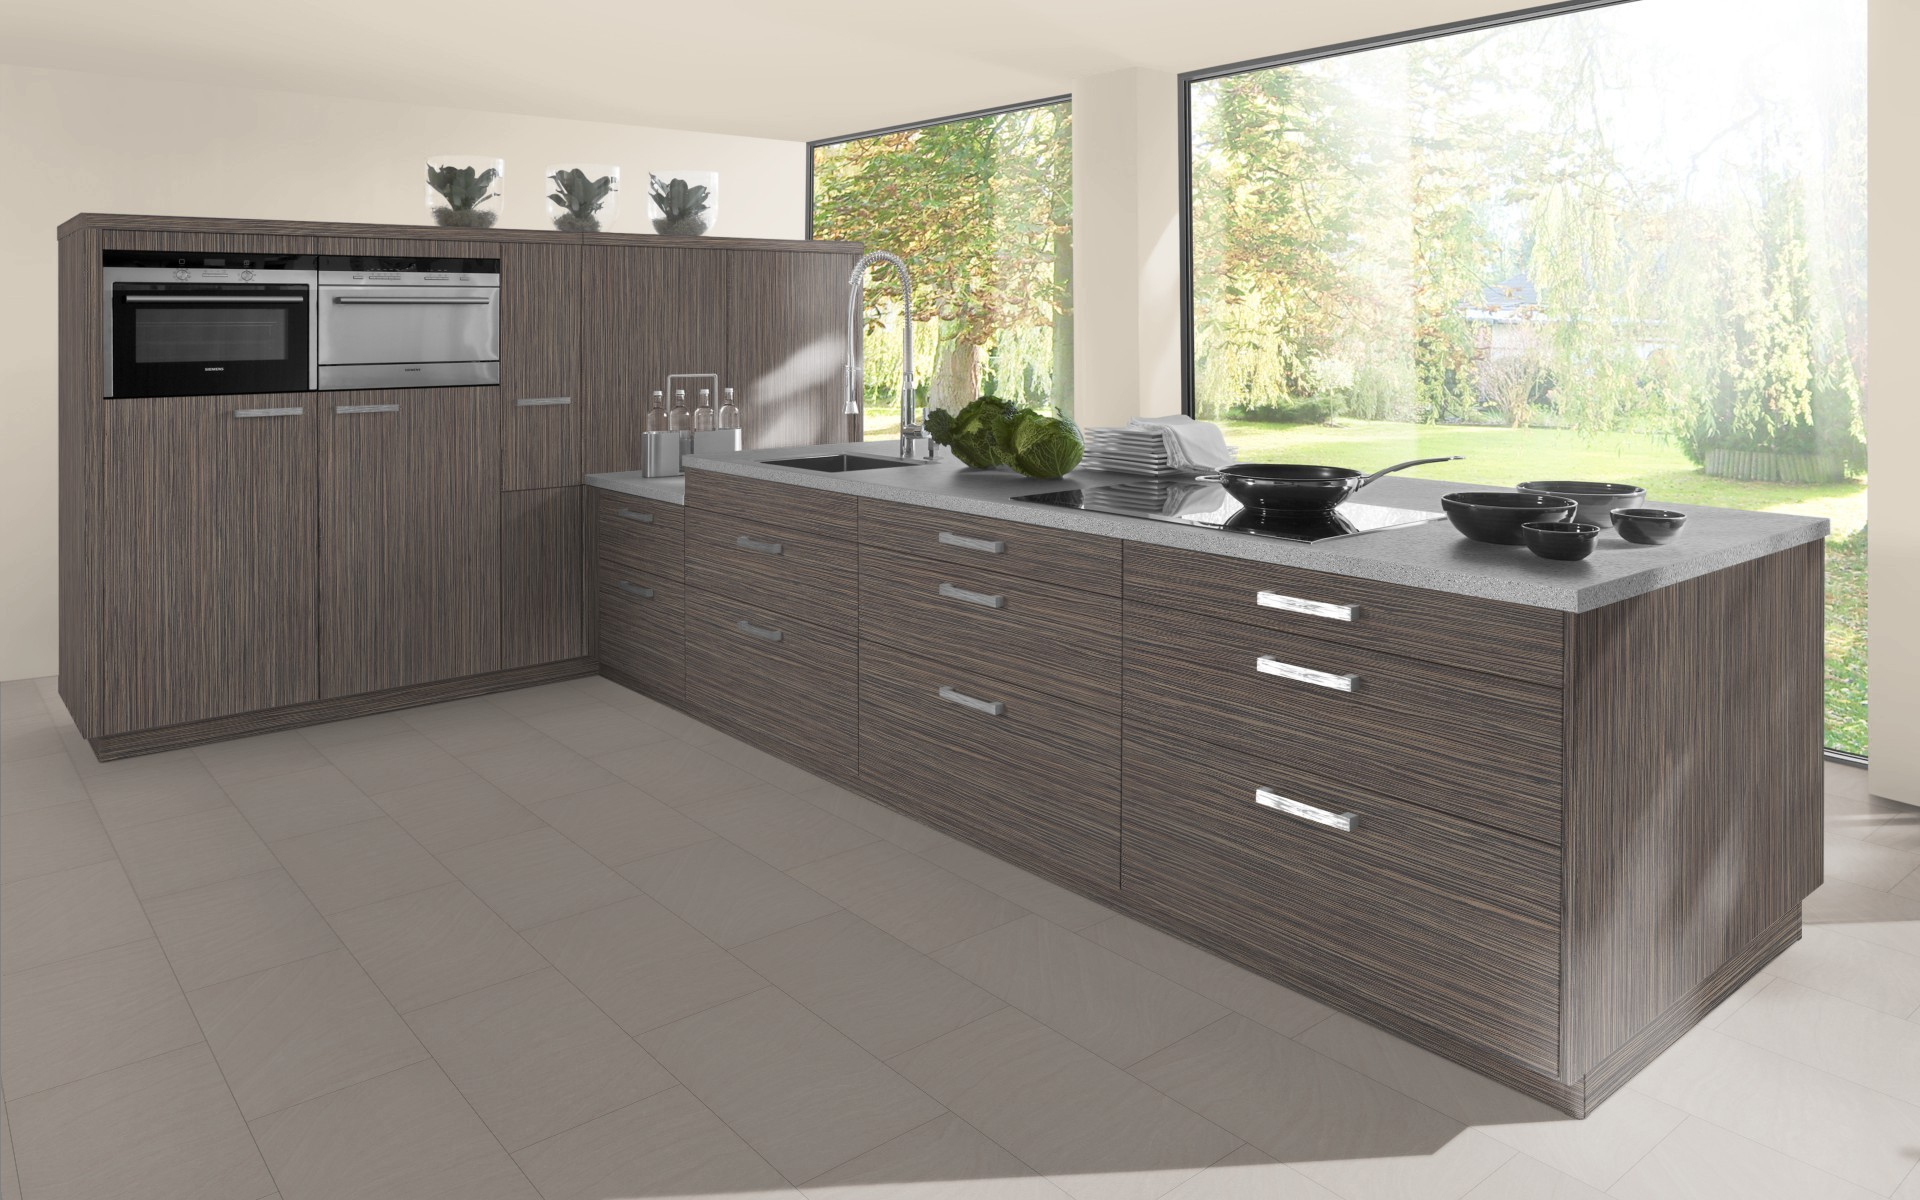 Textured Wood Kitchen Door In Grey Beige Zebrano Trade Doors For All - Grey wood kitchen doors